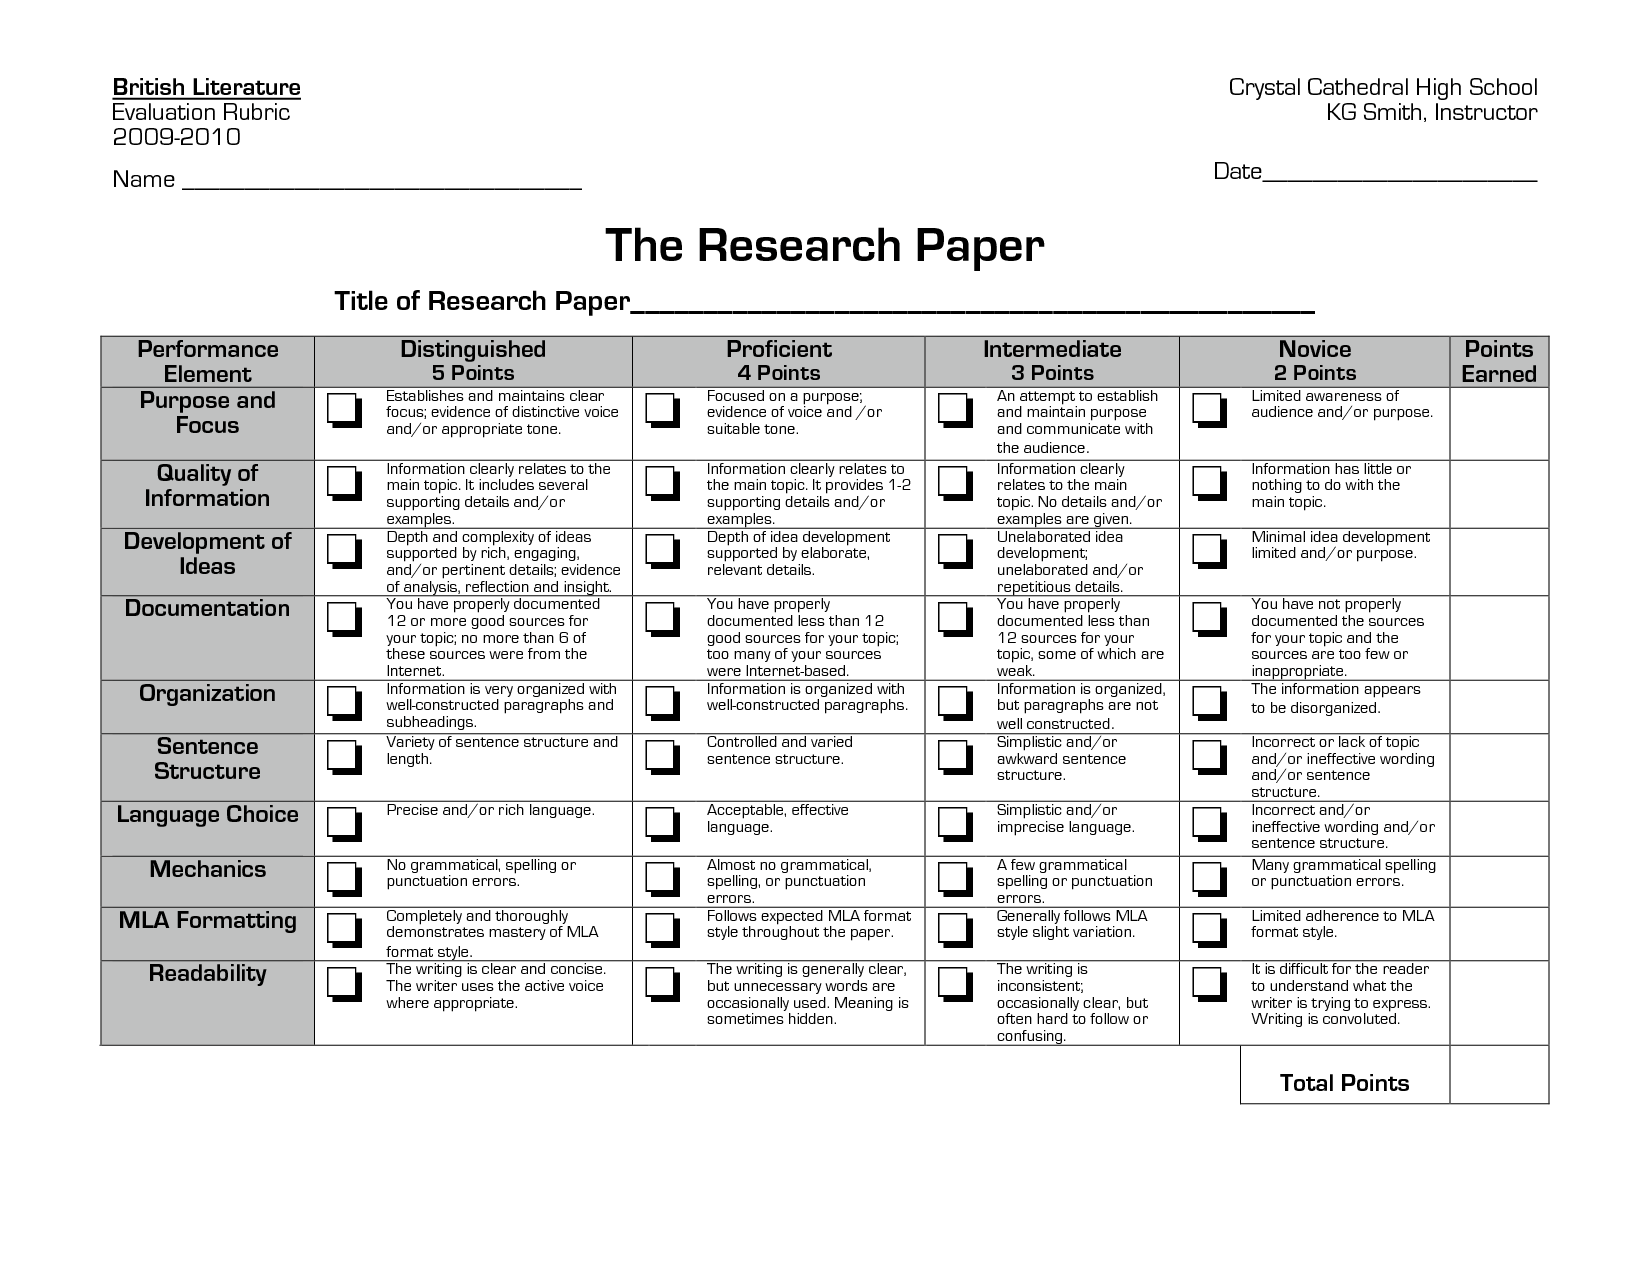 mla research paper rubric high school Research paper rubric (a) (b) (c) (d) (f) thesis clearly stated and appropriately focused clearly stated but focus could have been sharper thesis phrasing too simple, lacks complexity or, not clearly worded.